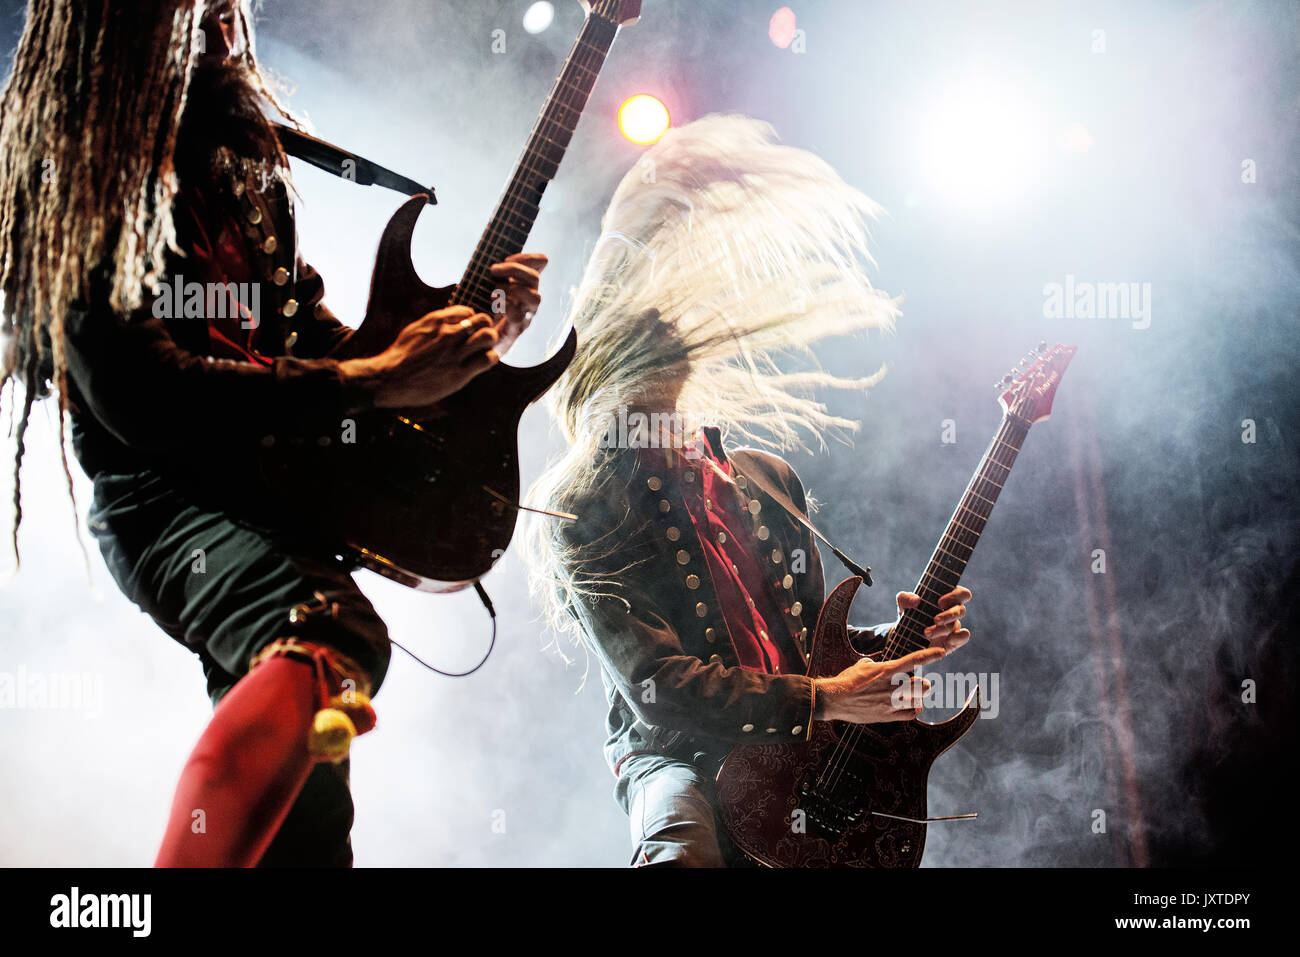 Madrid Jun 24 Avatar Music Band Perform In Concert At Download